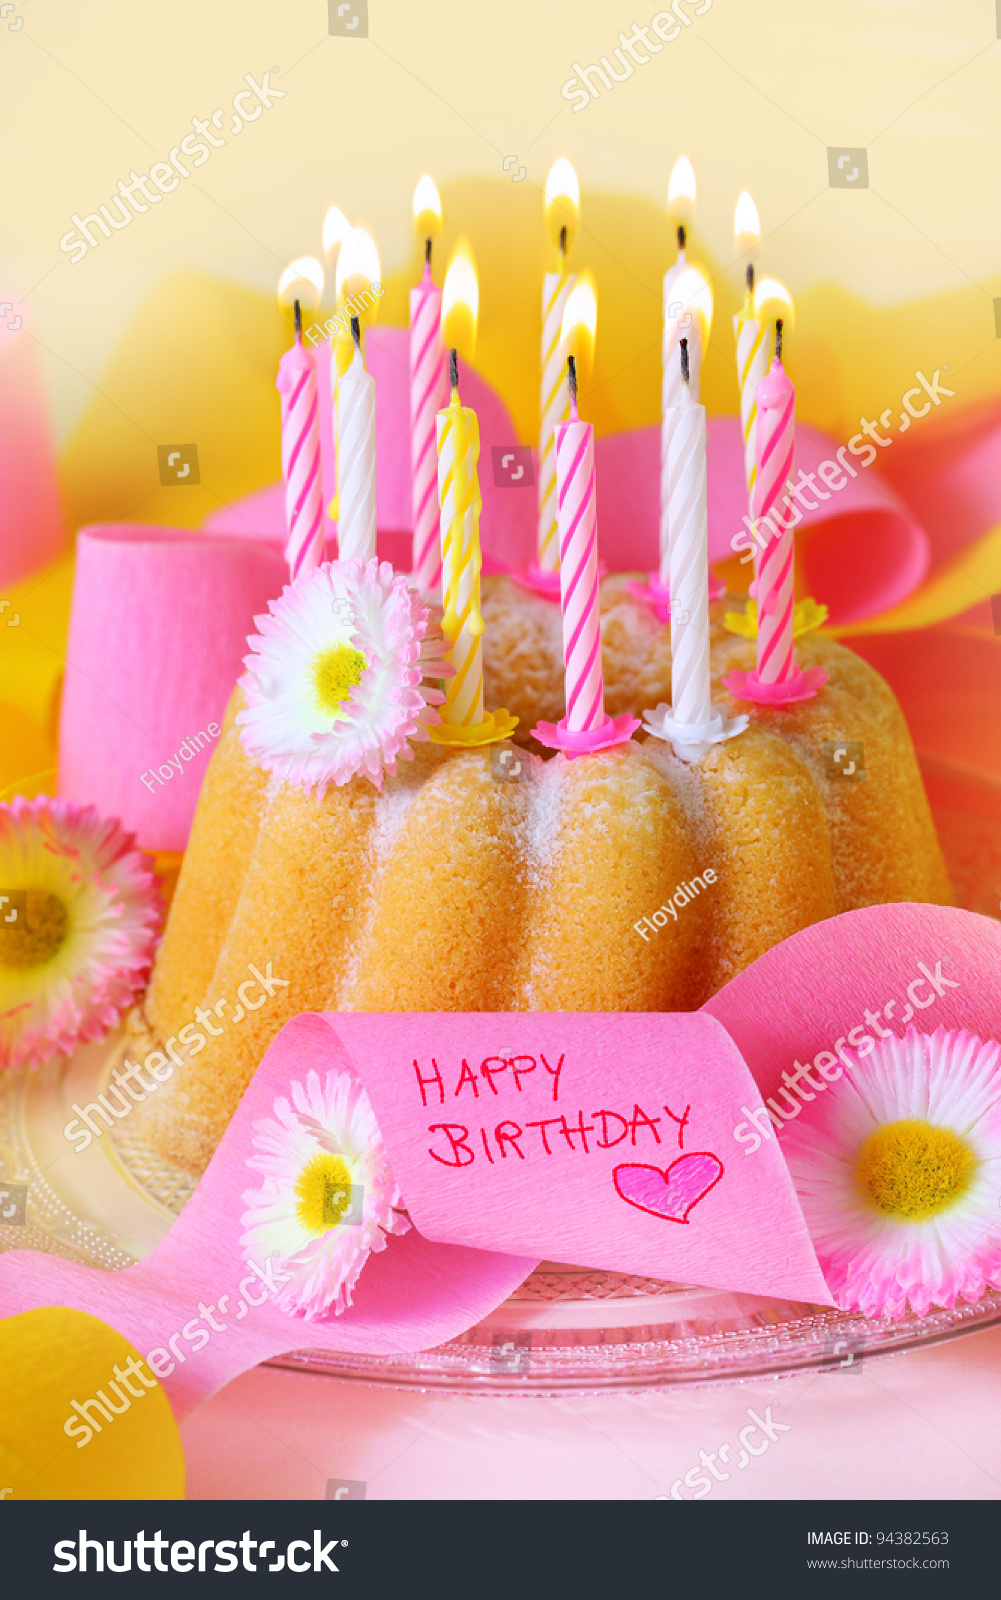 Happy birthday birthday cake flowers candles stock photo edit now happy birthday birthday cake with flowers candles and ribbons inscription happy birthday in izmirmasajfo